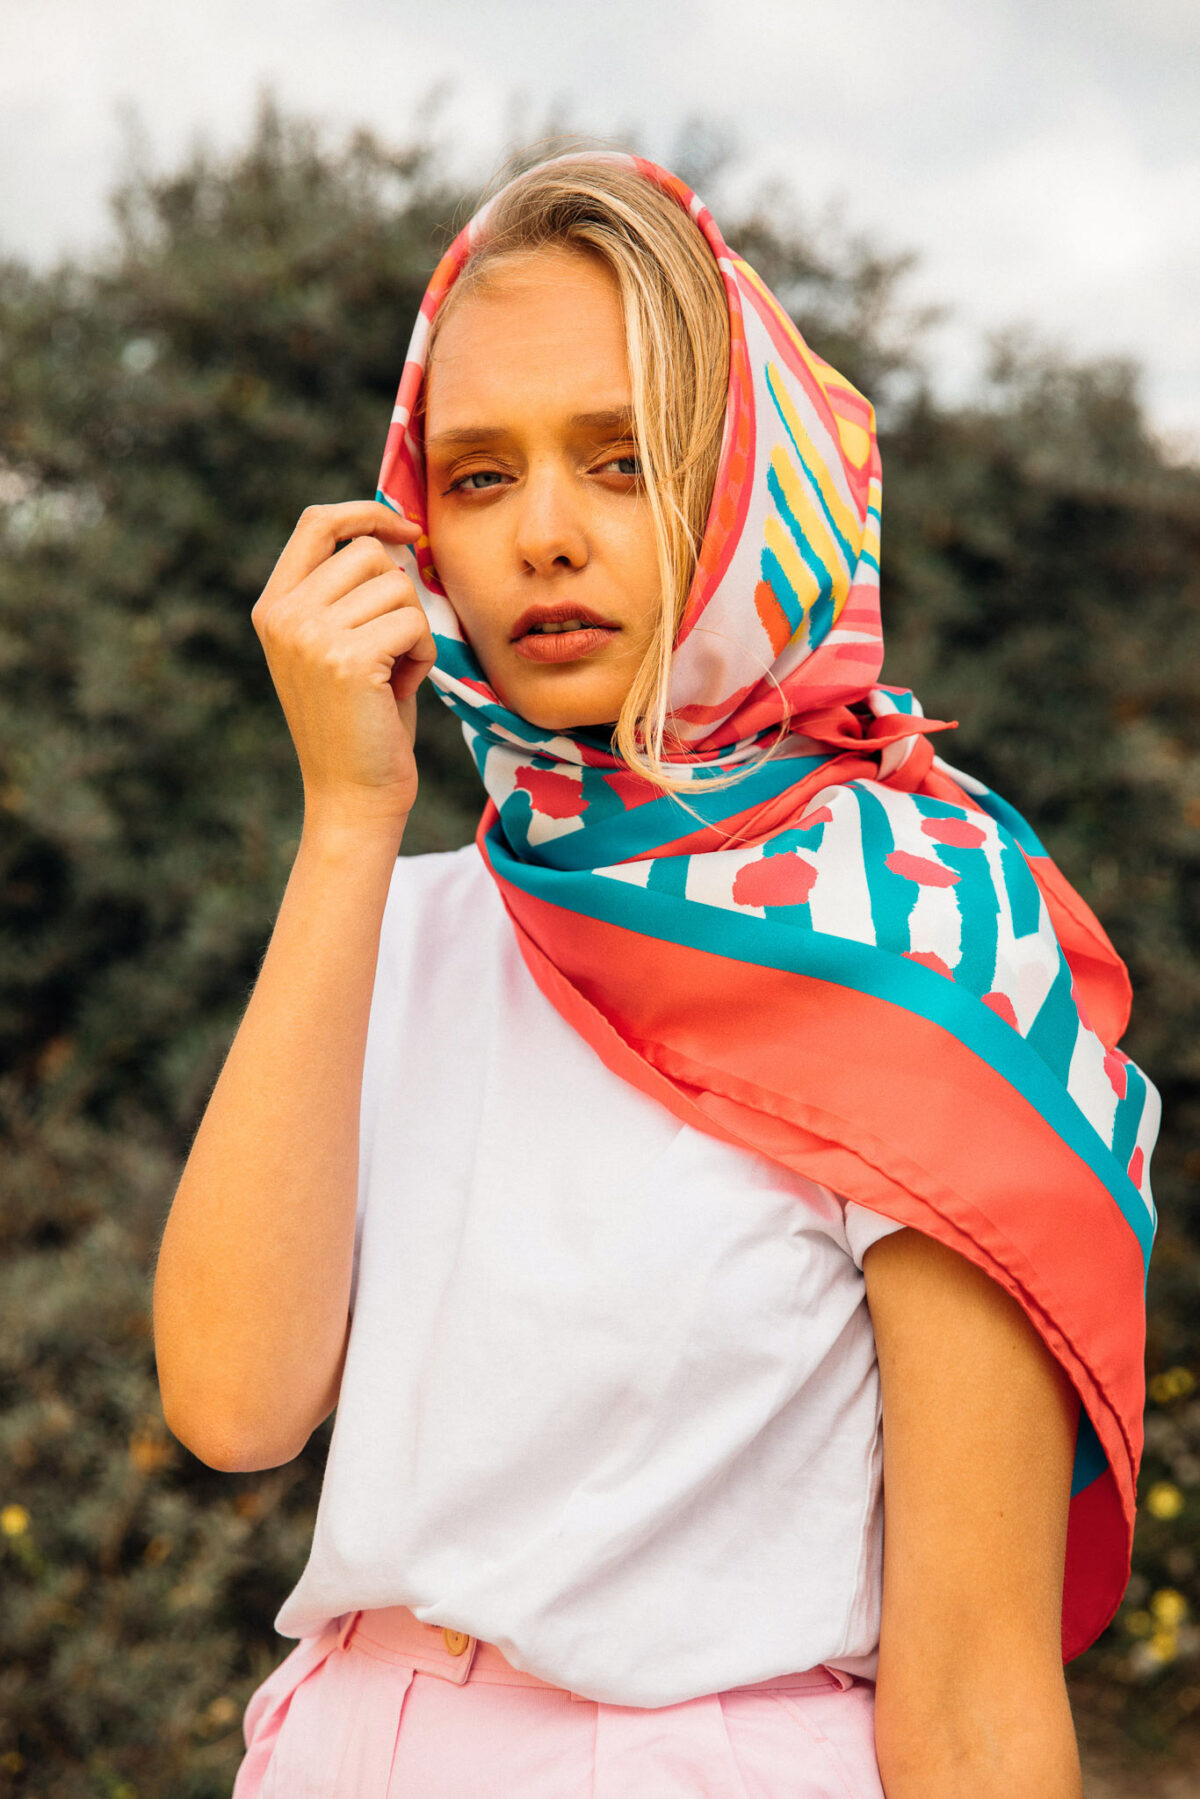 woman wearing a blue and orange scarf on her head